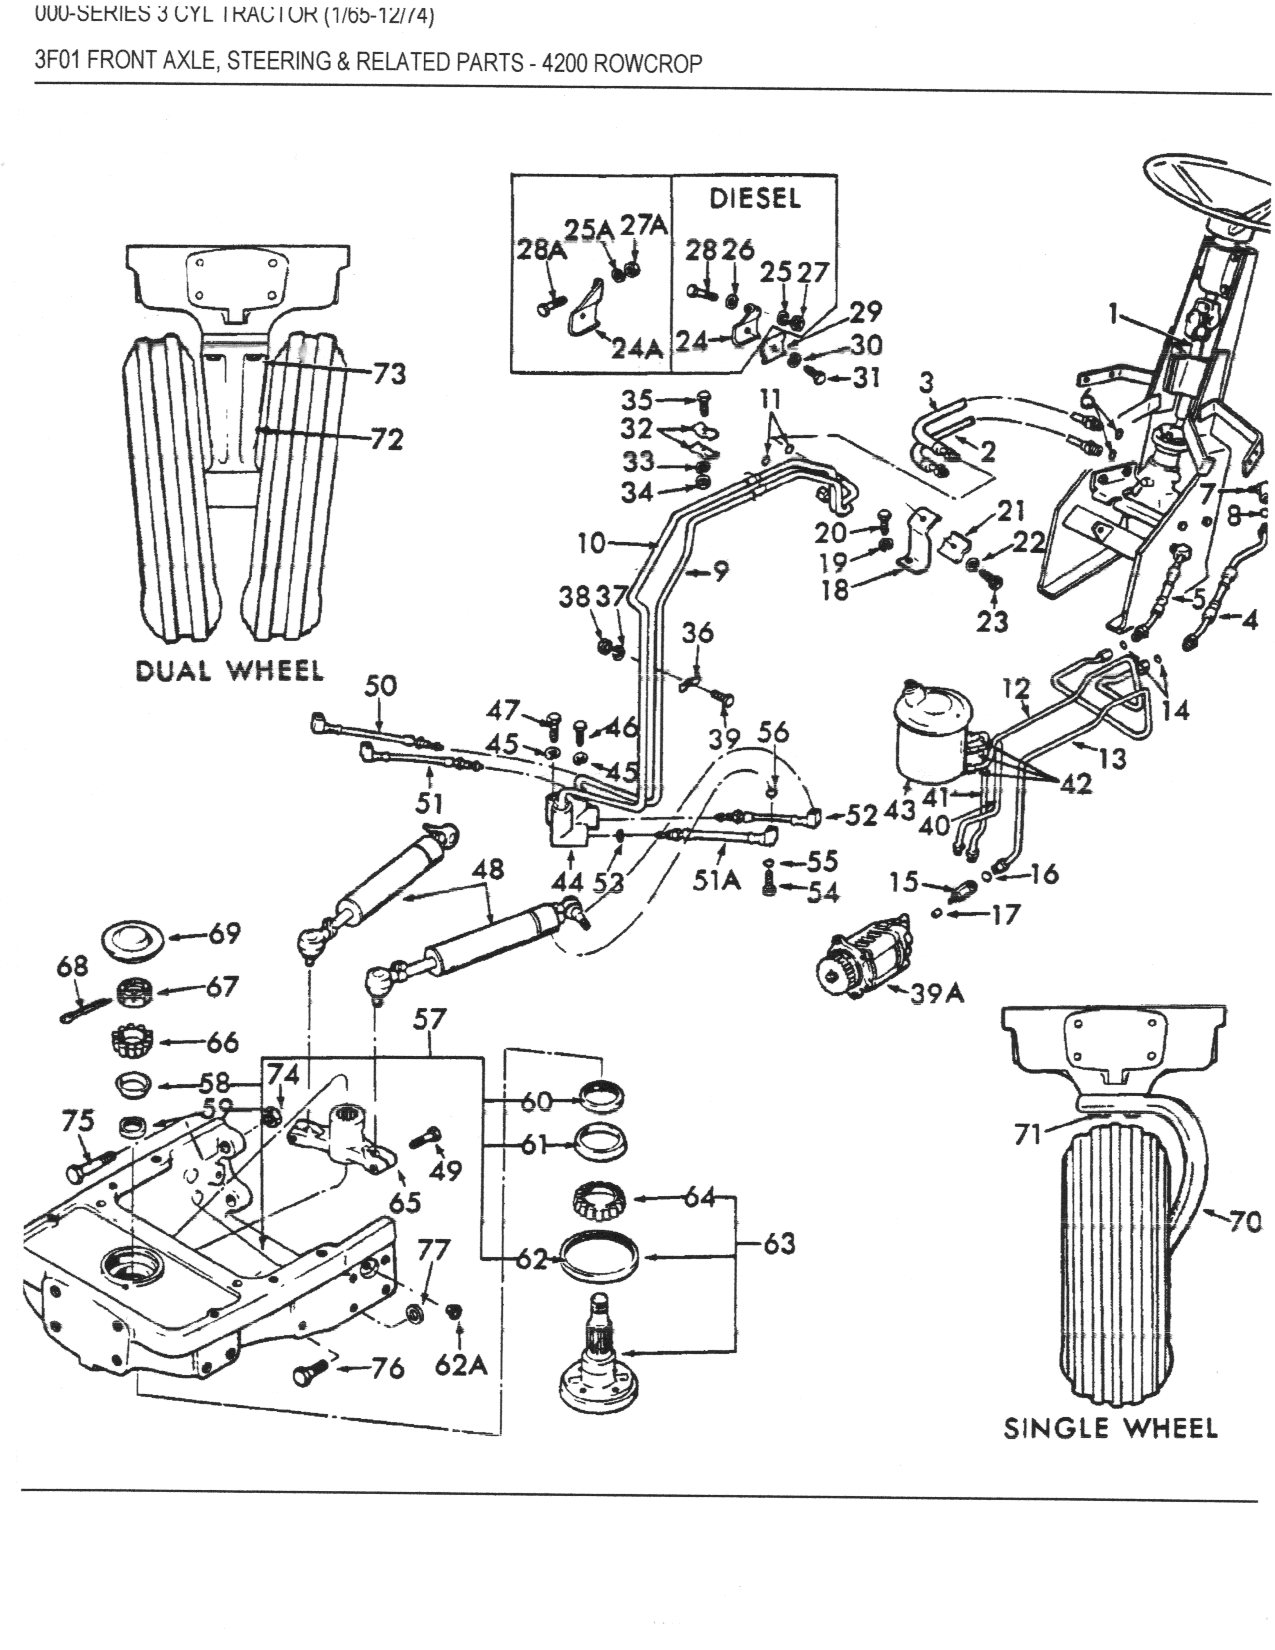 John Deere Pto Shaft Diagram